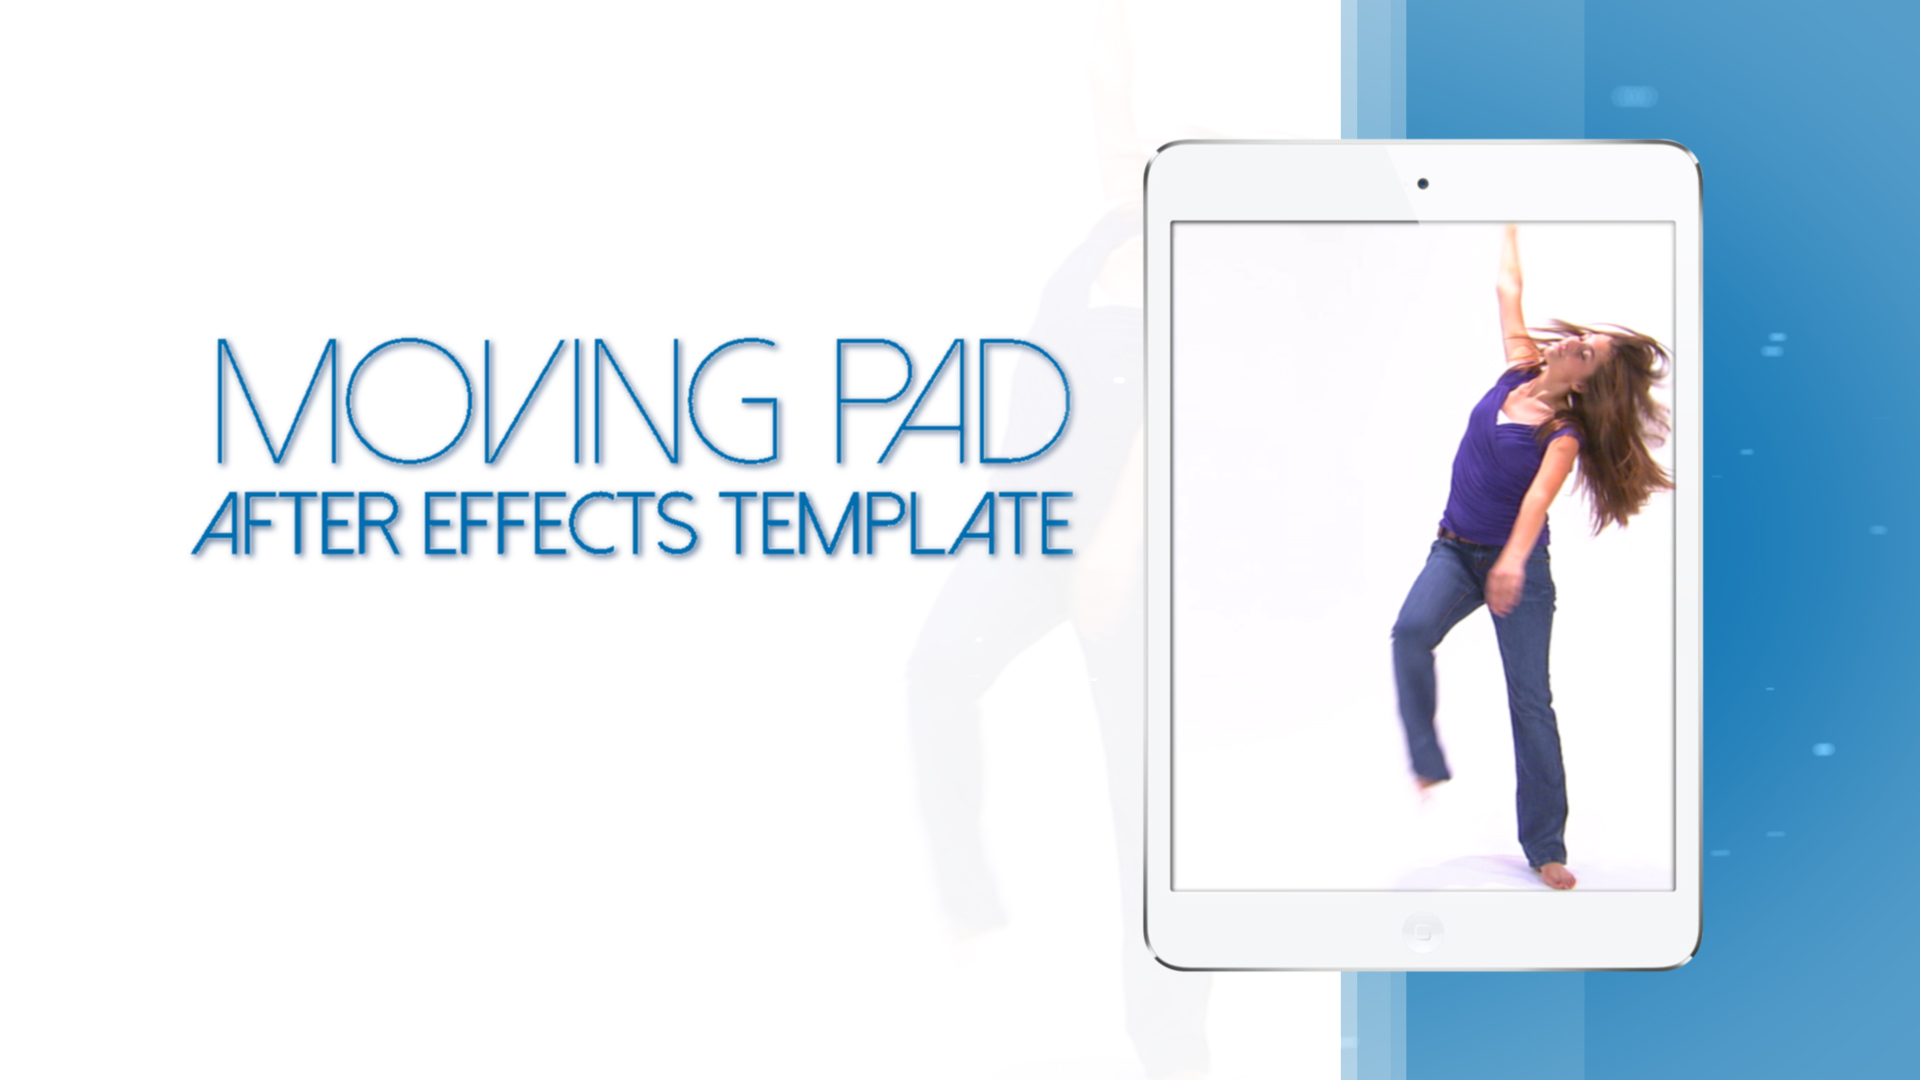 Moving Pad S Commercial White Edition - After effects commercial template